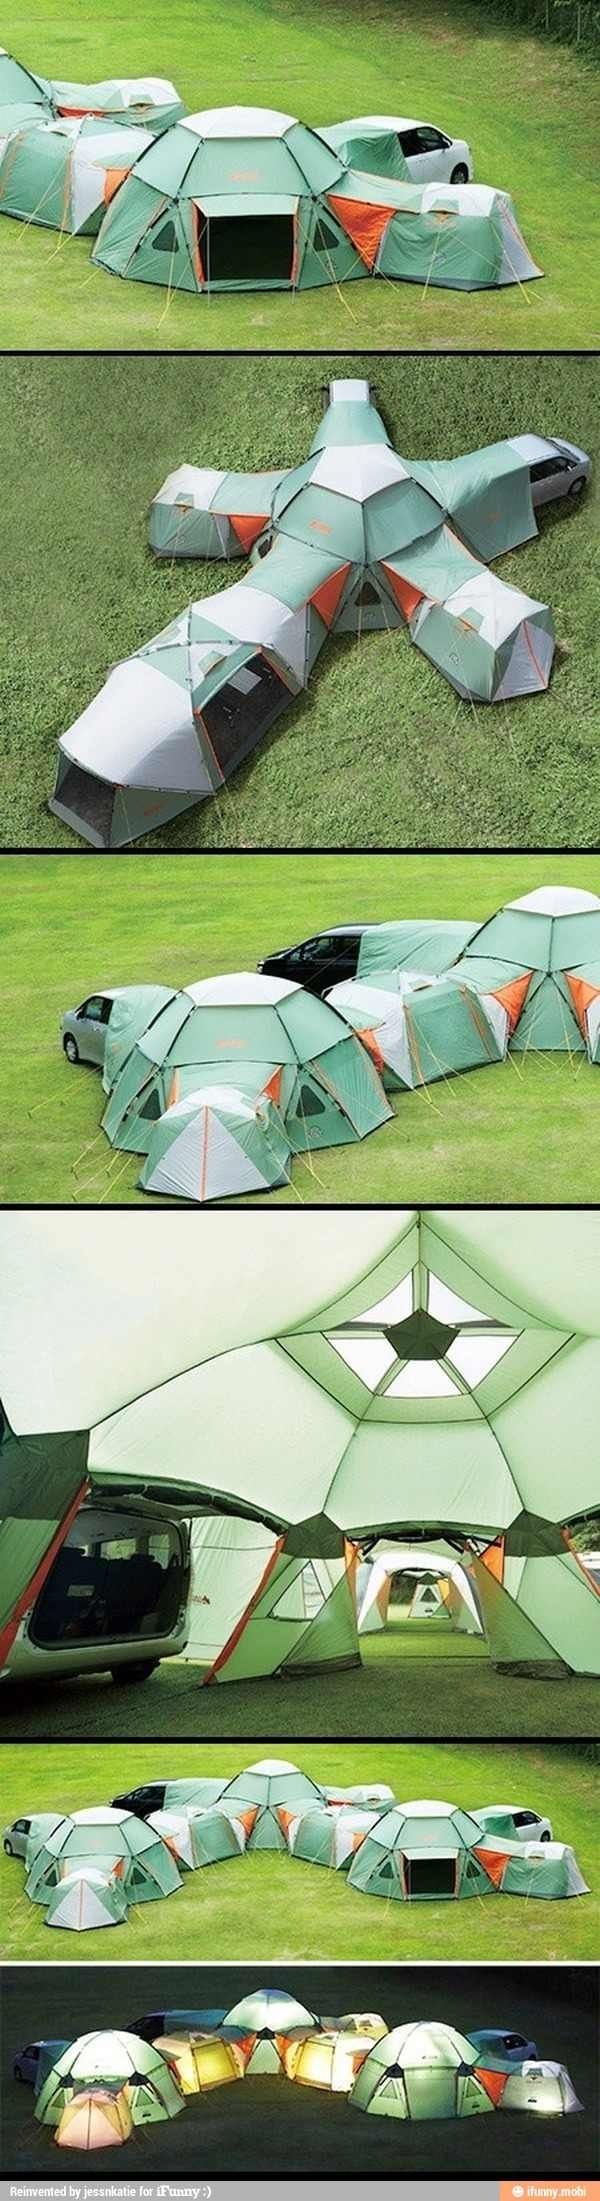 Maybe I could camp like this!!!